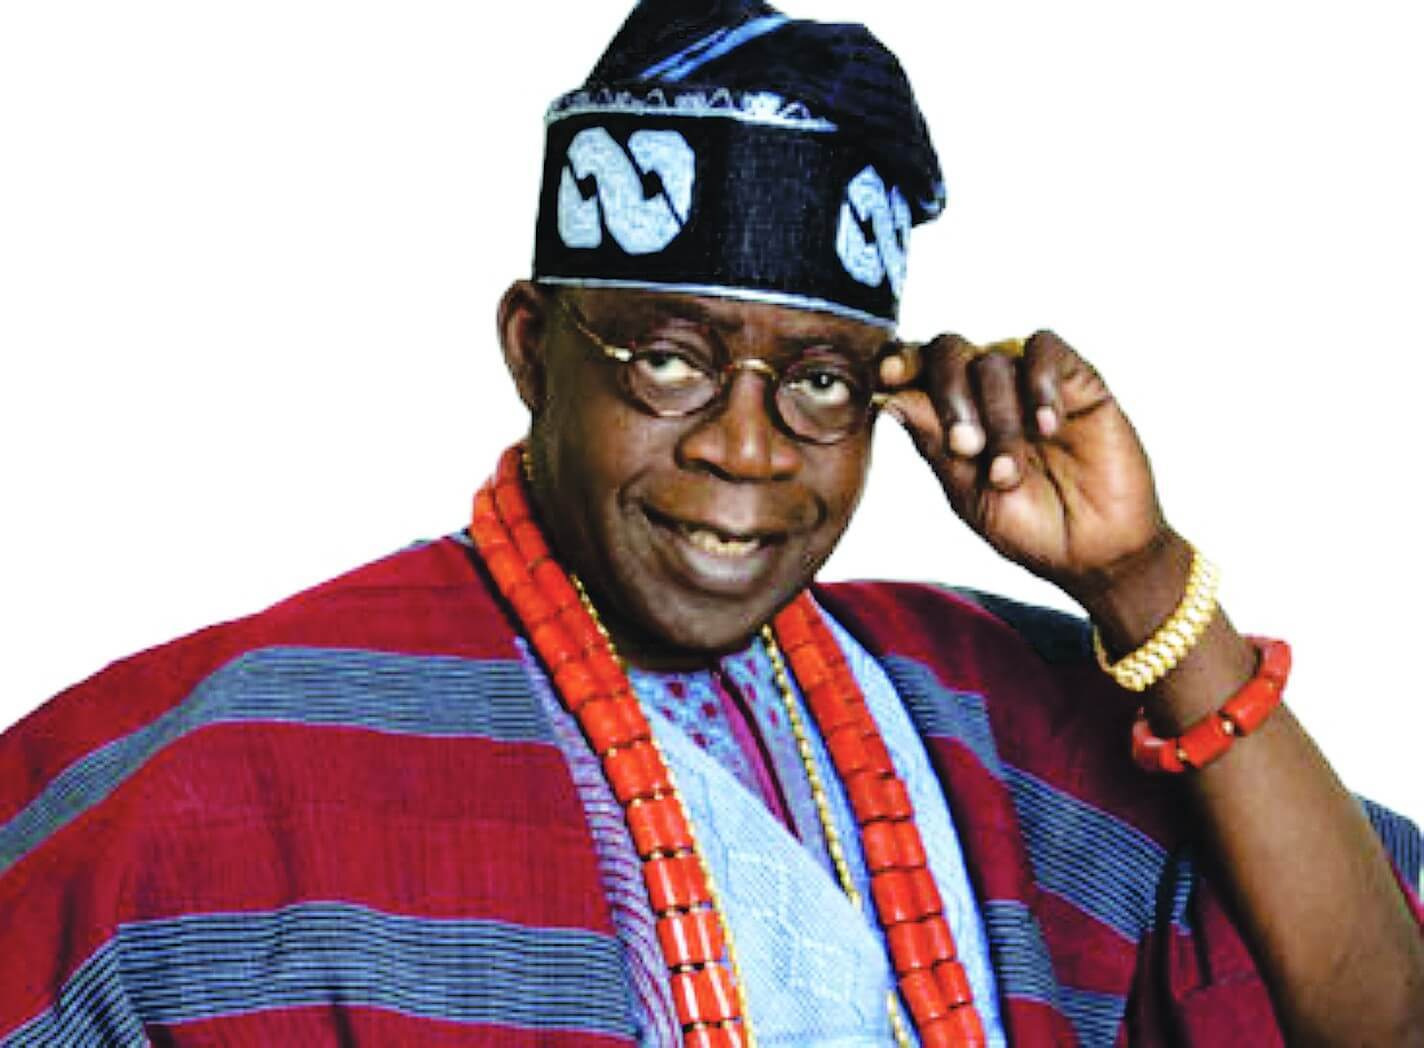 Tinubu donates N200m to contain coronavirus - Vanguard News